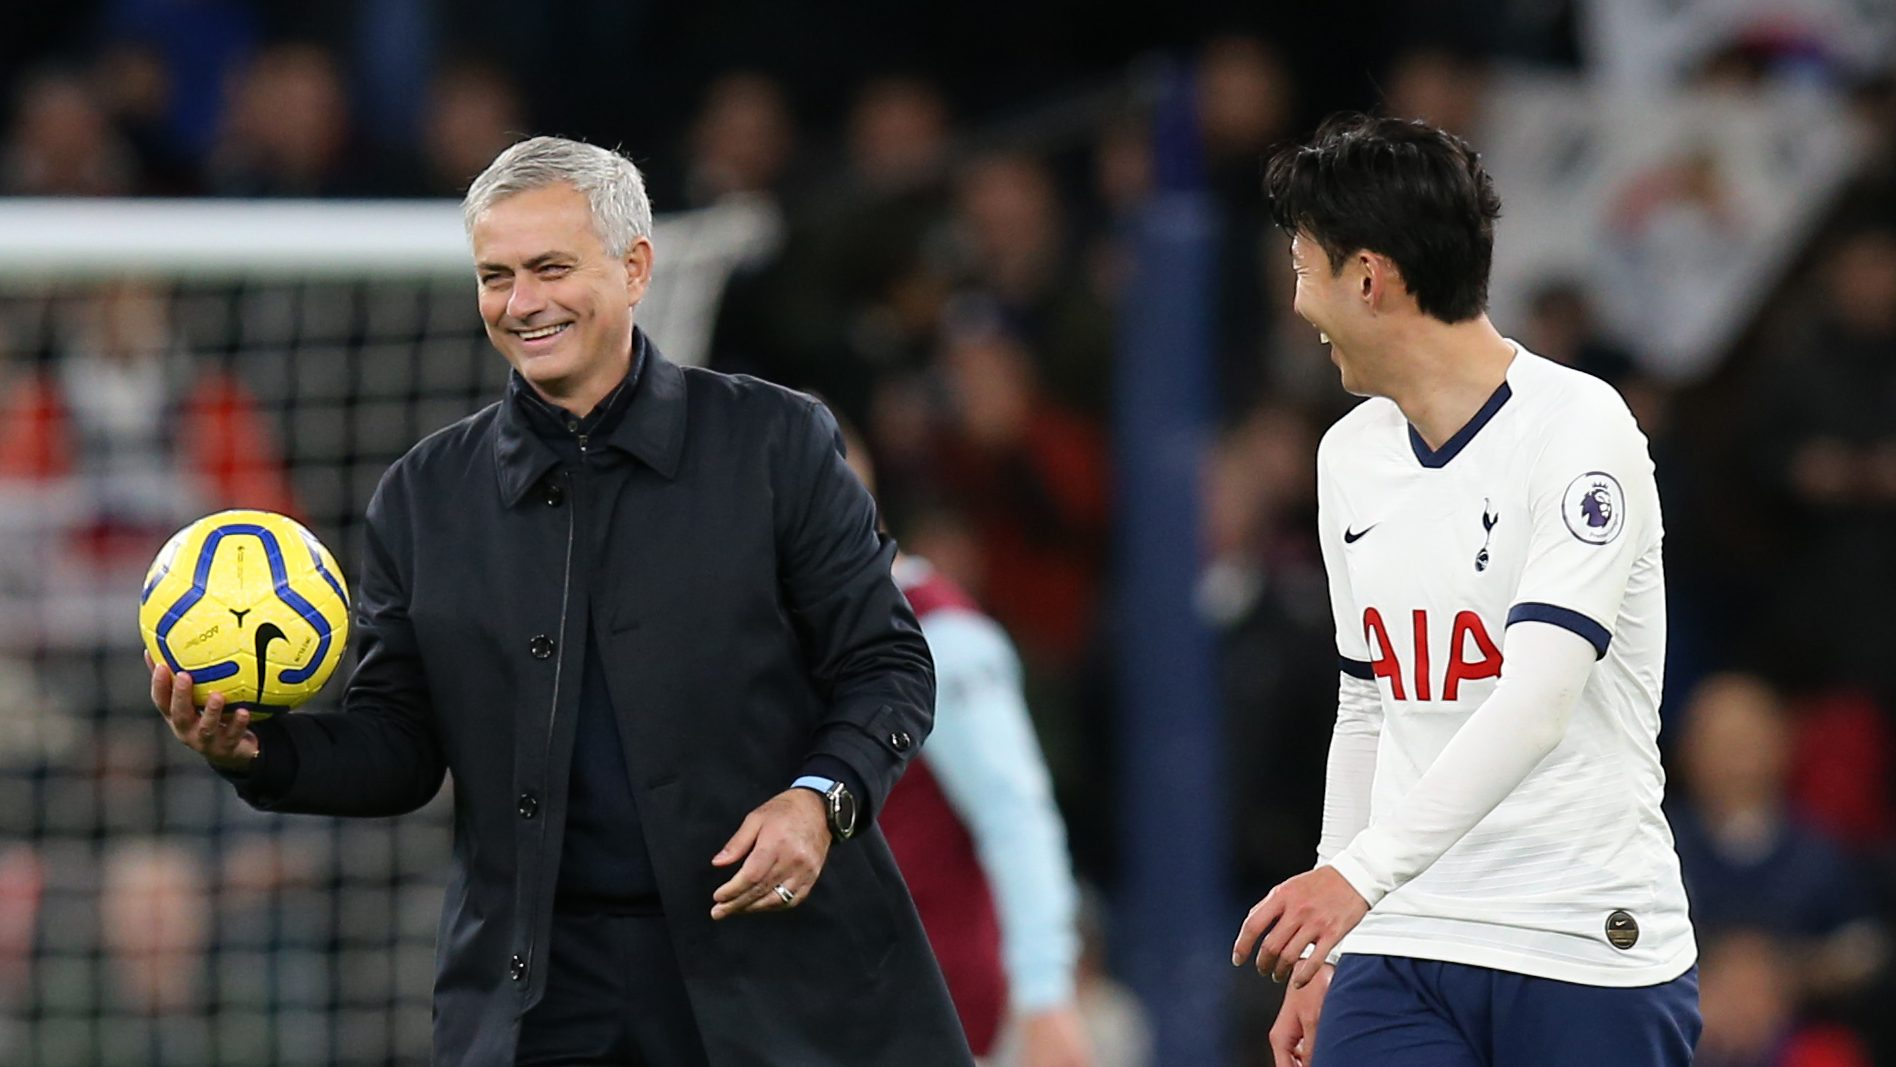 Tottenham have made a flying start in the Premier League